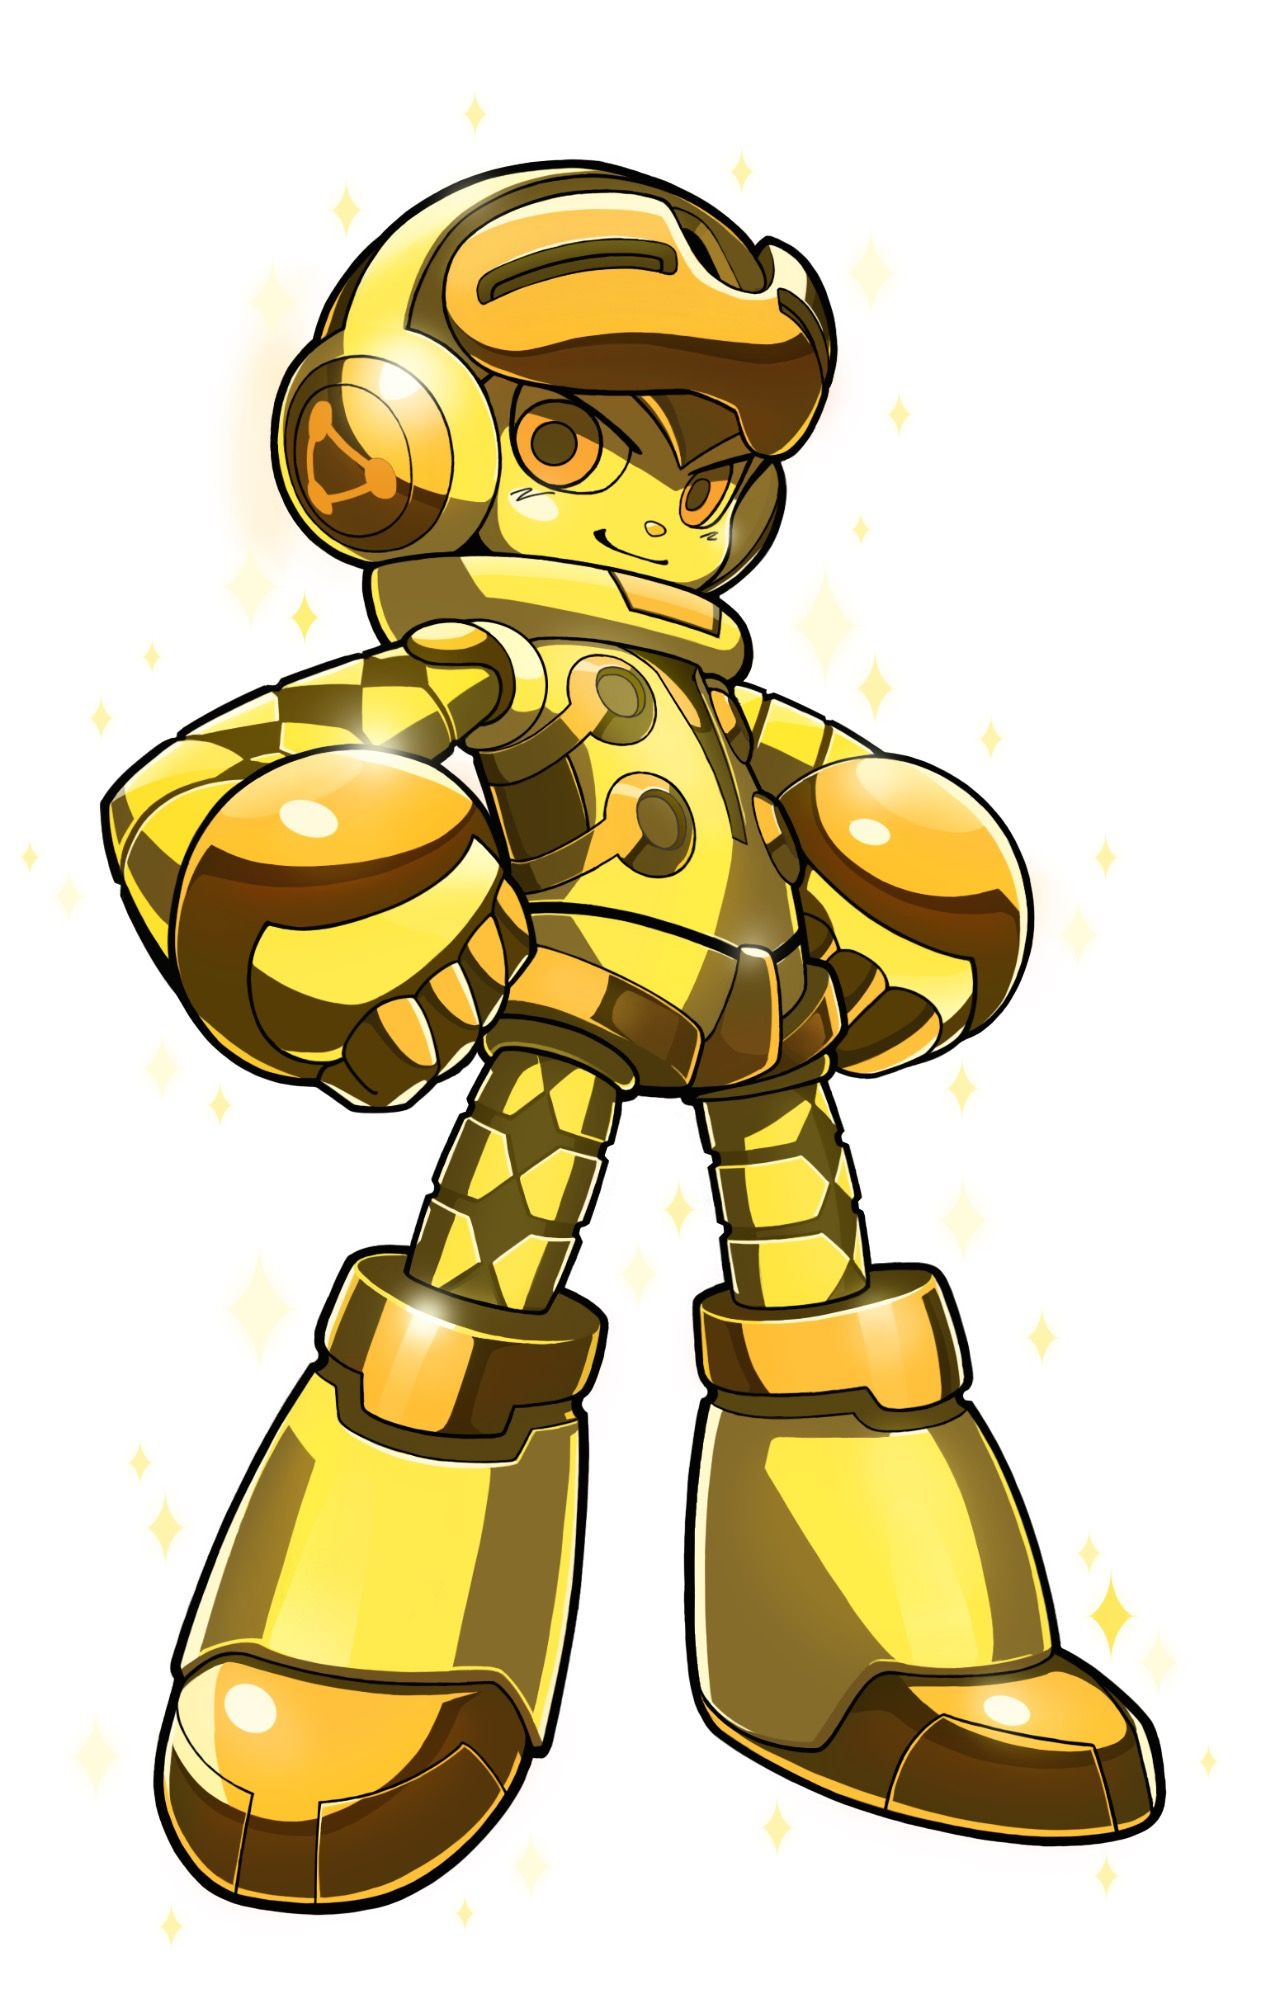 Mighty No 9 gold